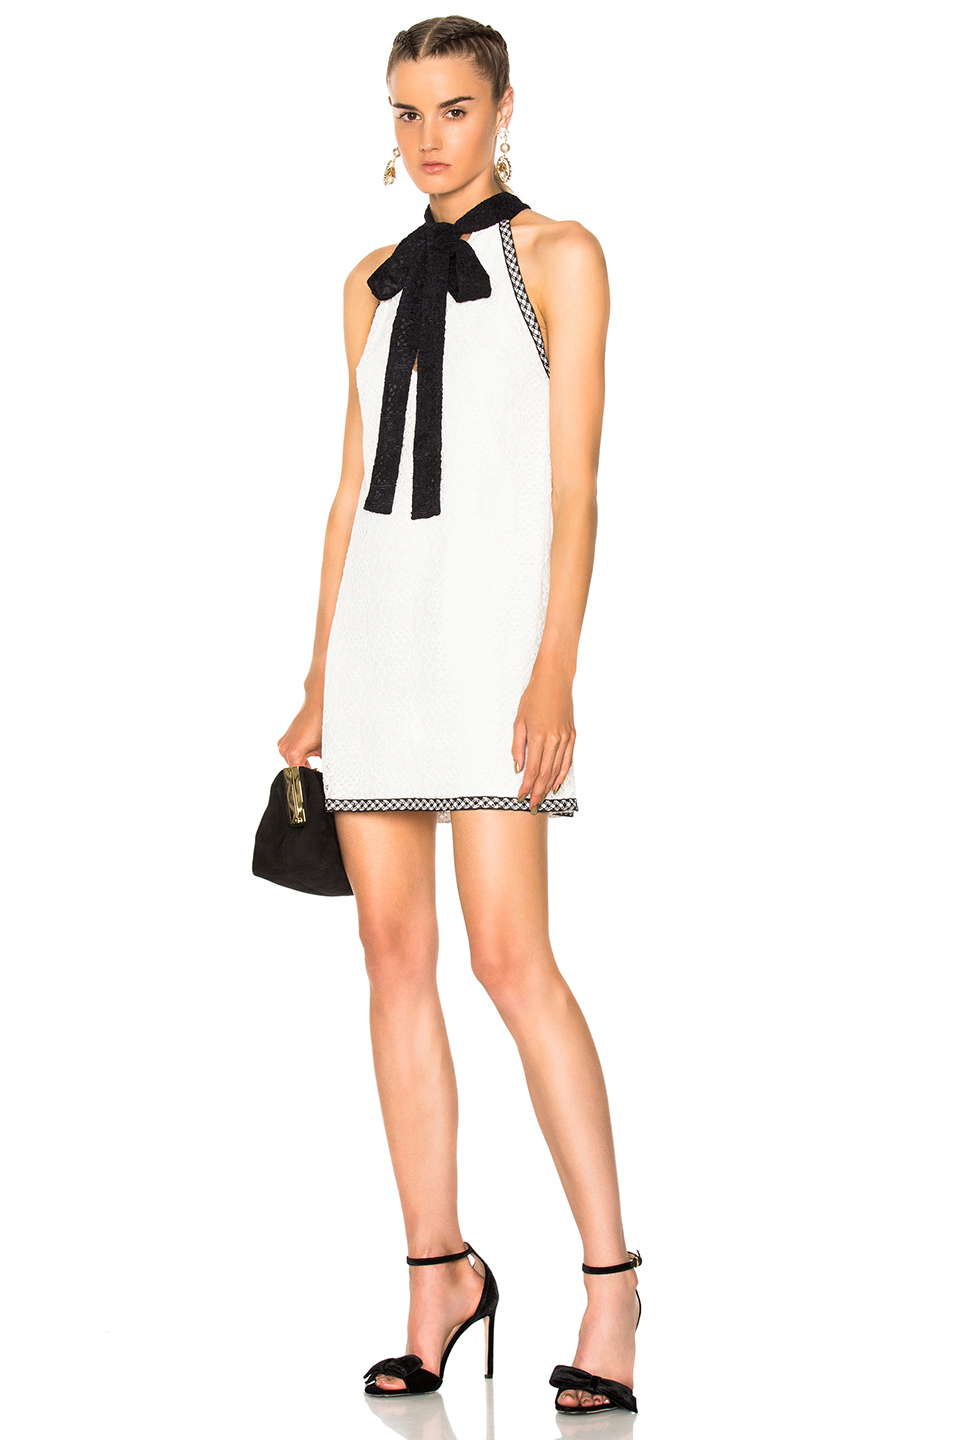 Alexis Genevieve Dress in White